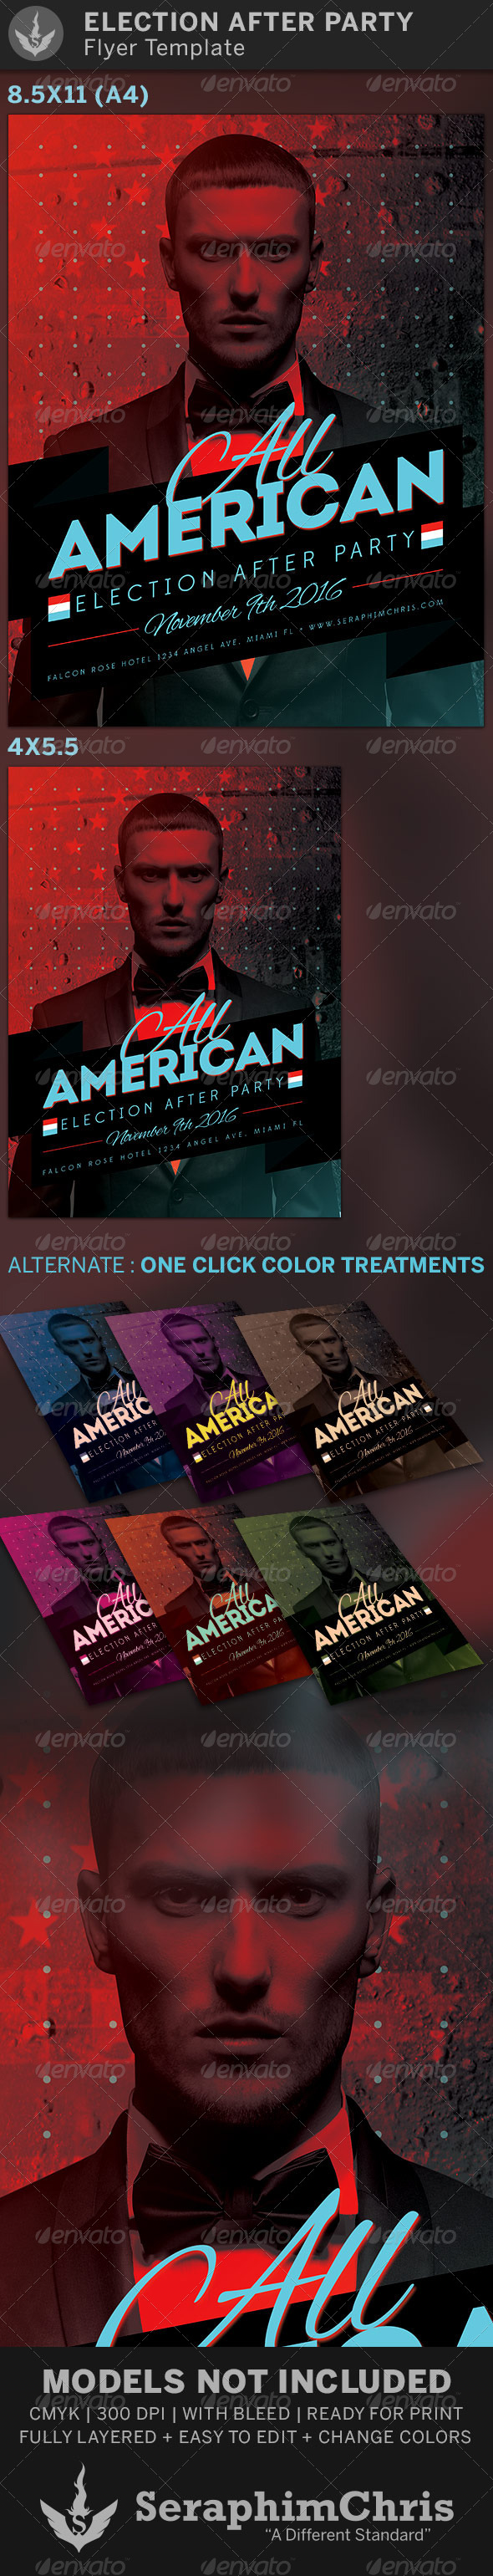 GraphicRiver All American Election After Party Flyer Template 6748771